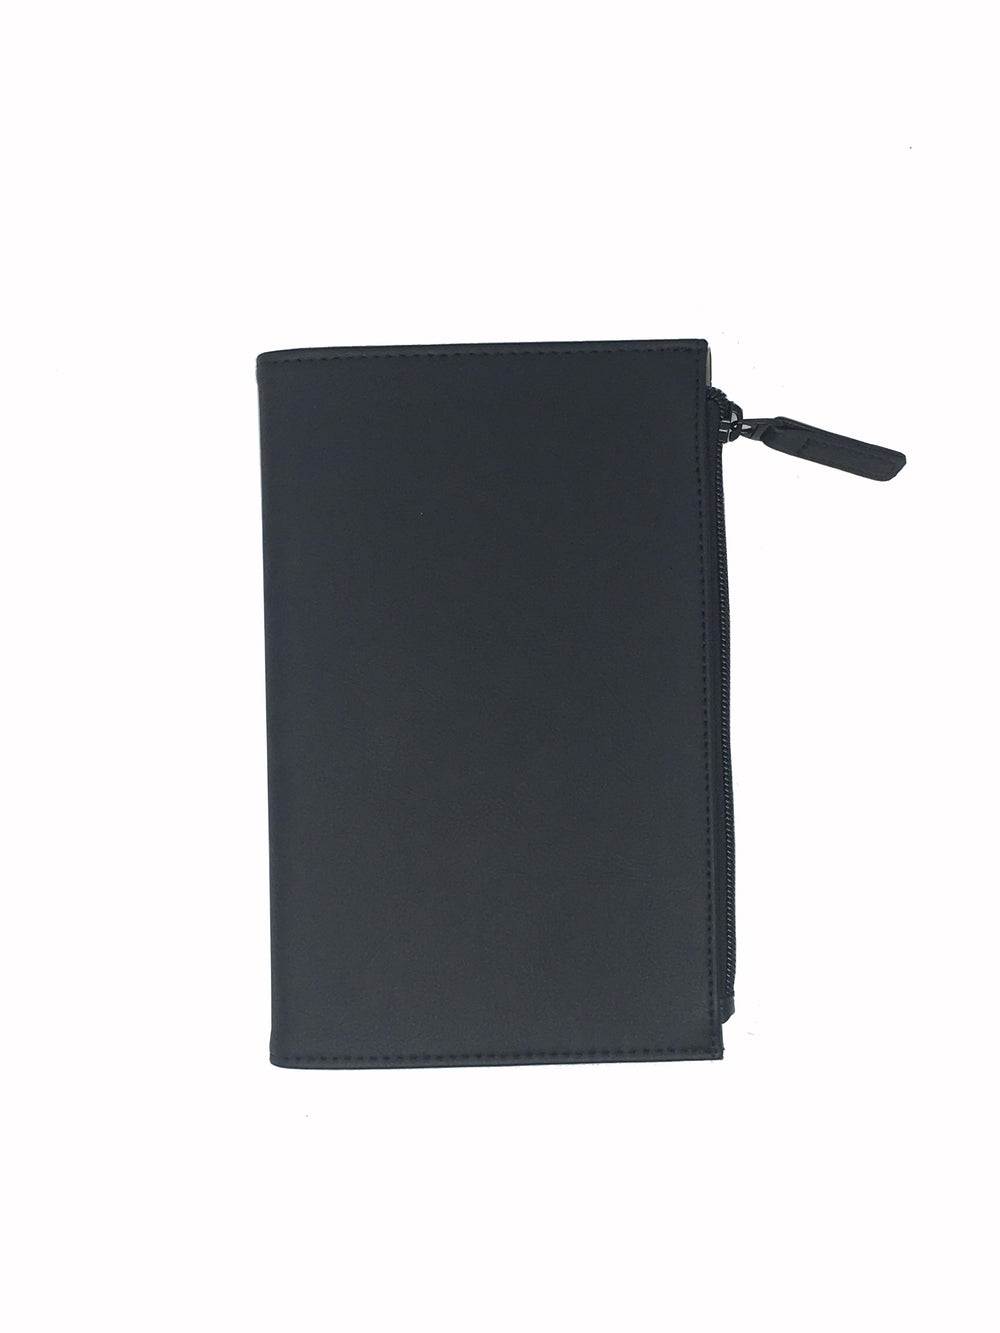 Executive Stylish Journal Notebook Planner W/ Phone or Items Storage Makes it More Organize & Not Lose Your Belonging-Great For School, Work, Gift.